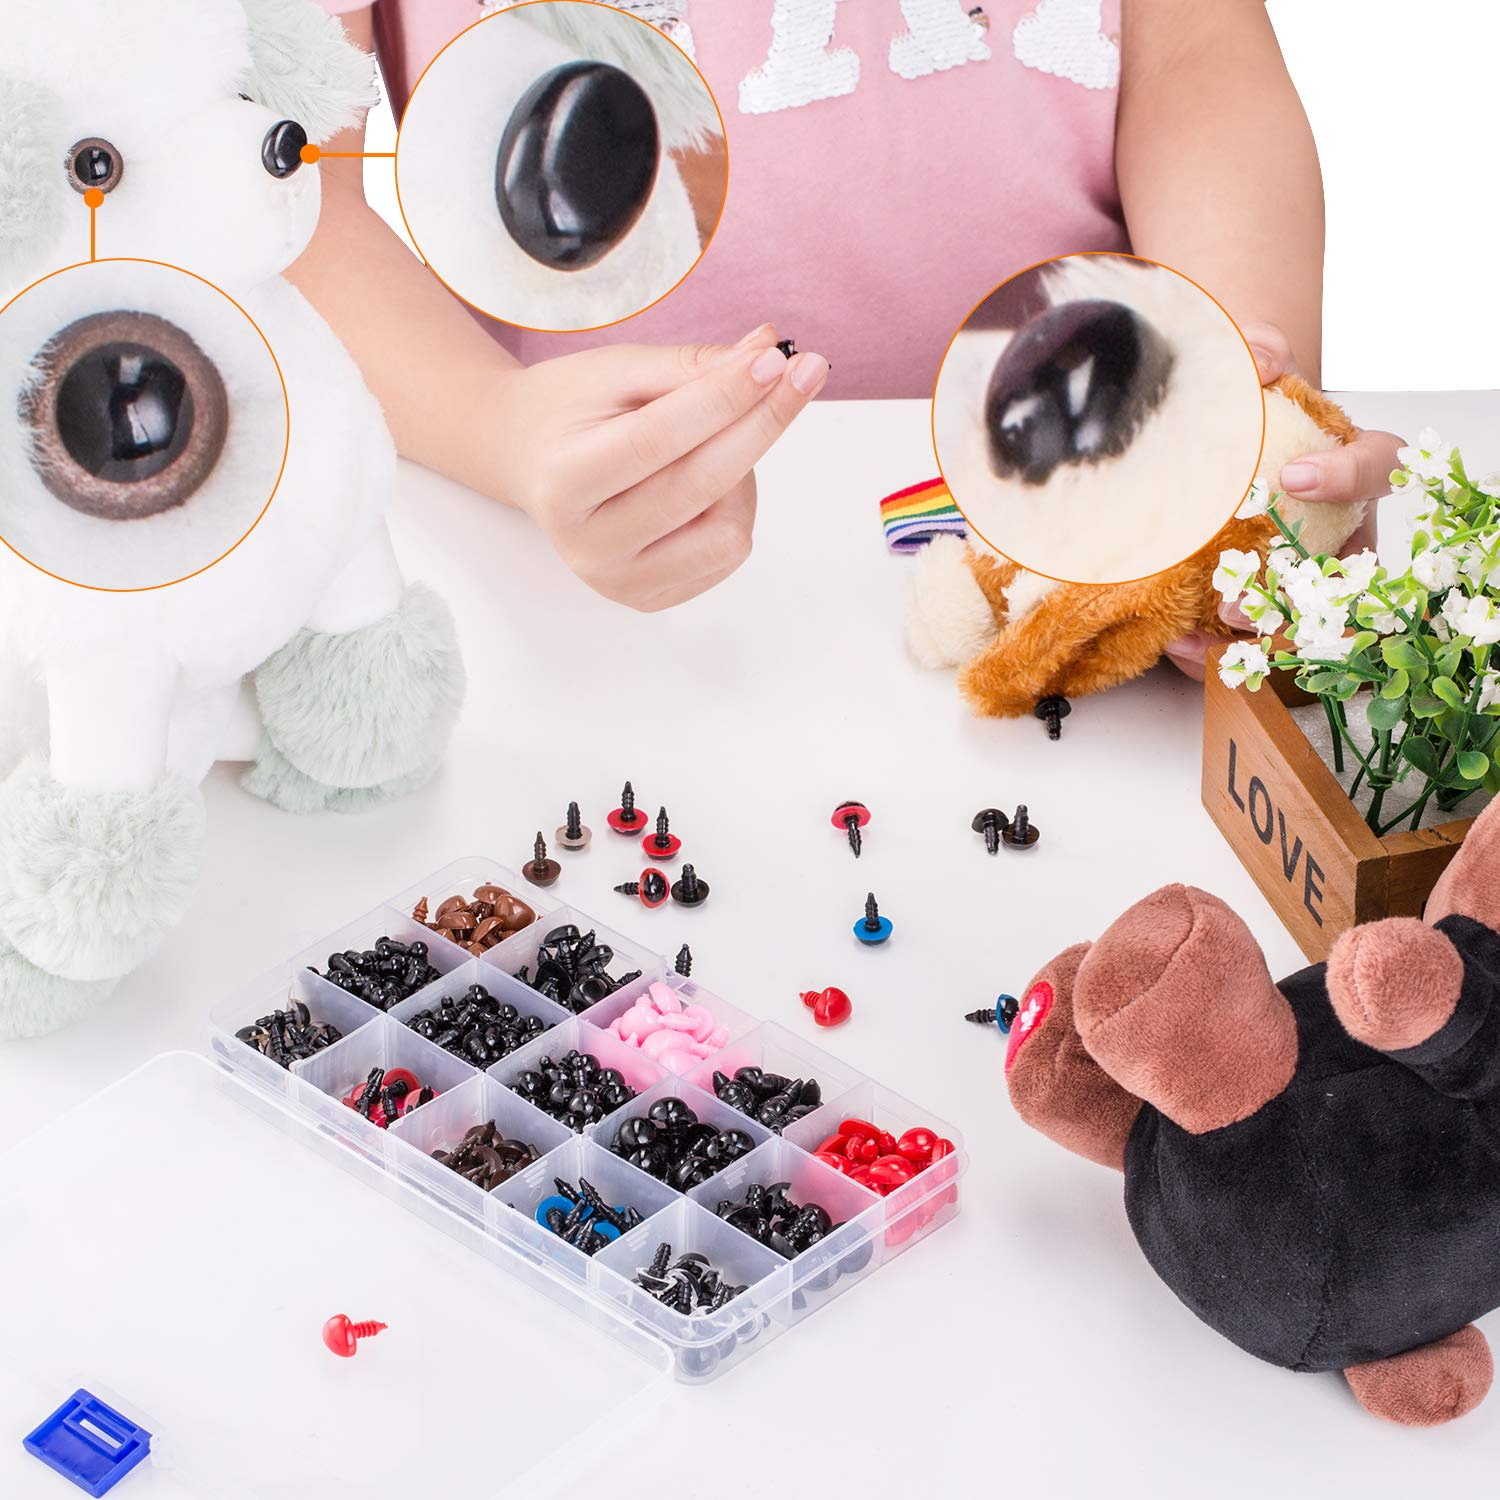 Colorful Plastic Safety Eyes and Noses Assorted Sizes for Doll Plush Animal and Teddy Bear Craft Making by AMOKIA 752pcs Safety Eyes and Safety Noses with Washers for Doll